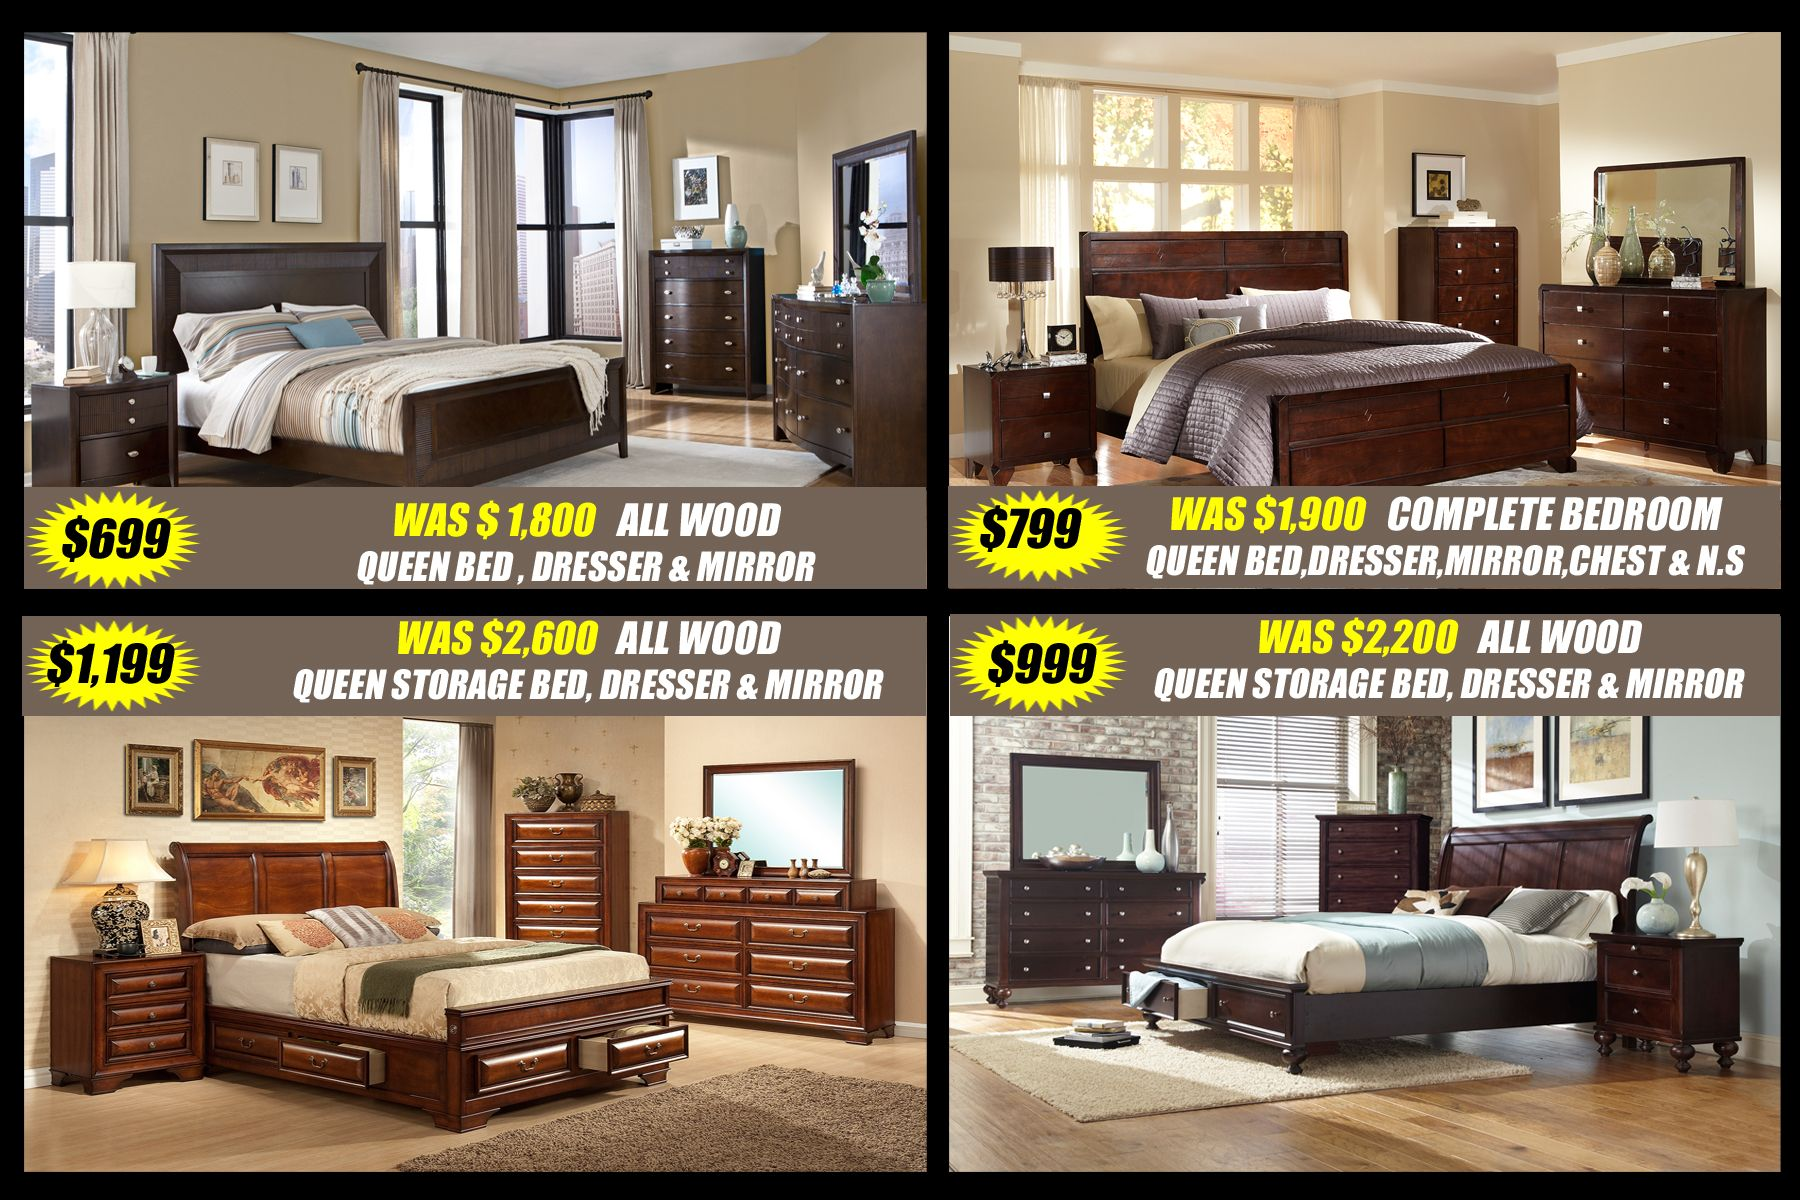 Visit Our Showrooms Or Buy Online At Www.bestbuy Furniture.com 856